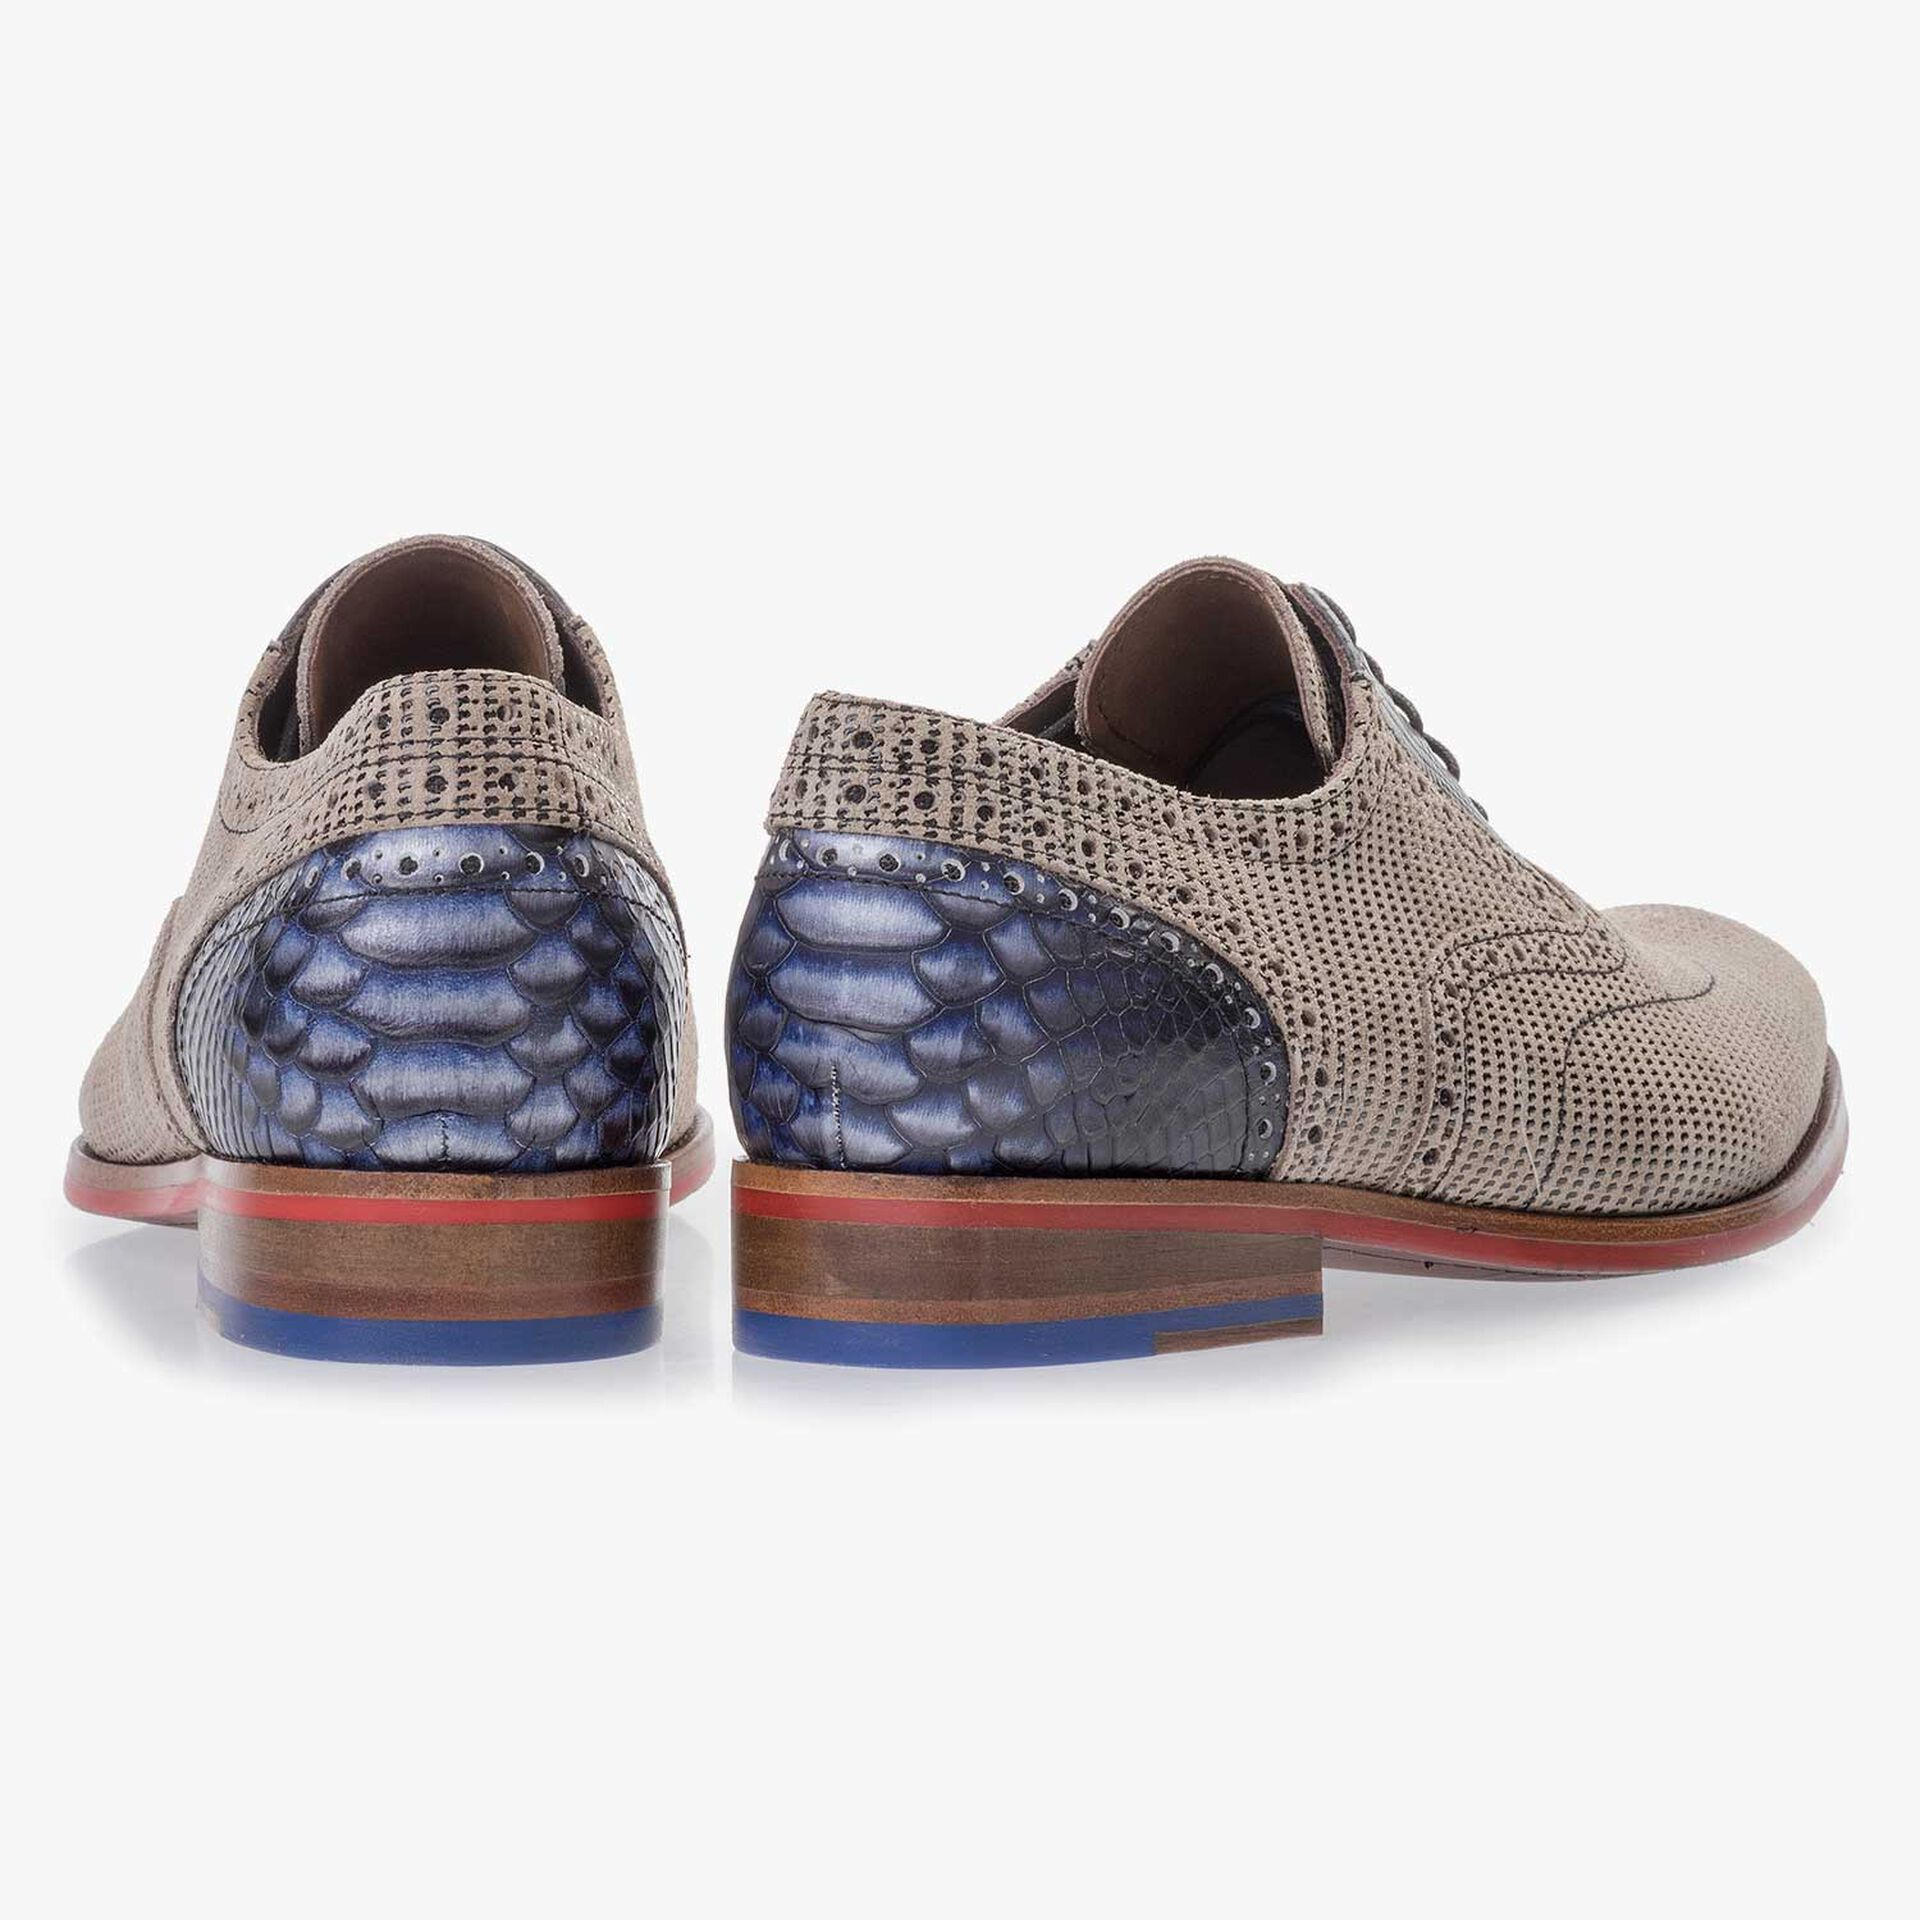 Sand-coloured patterned lace shoe made of suede leather